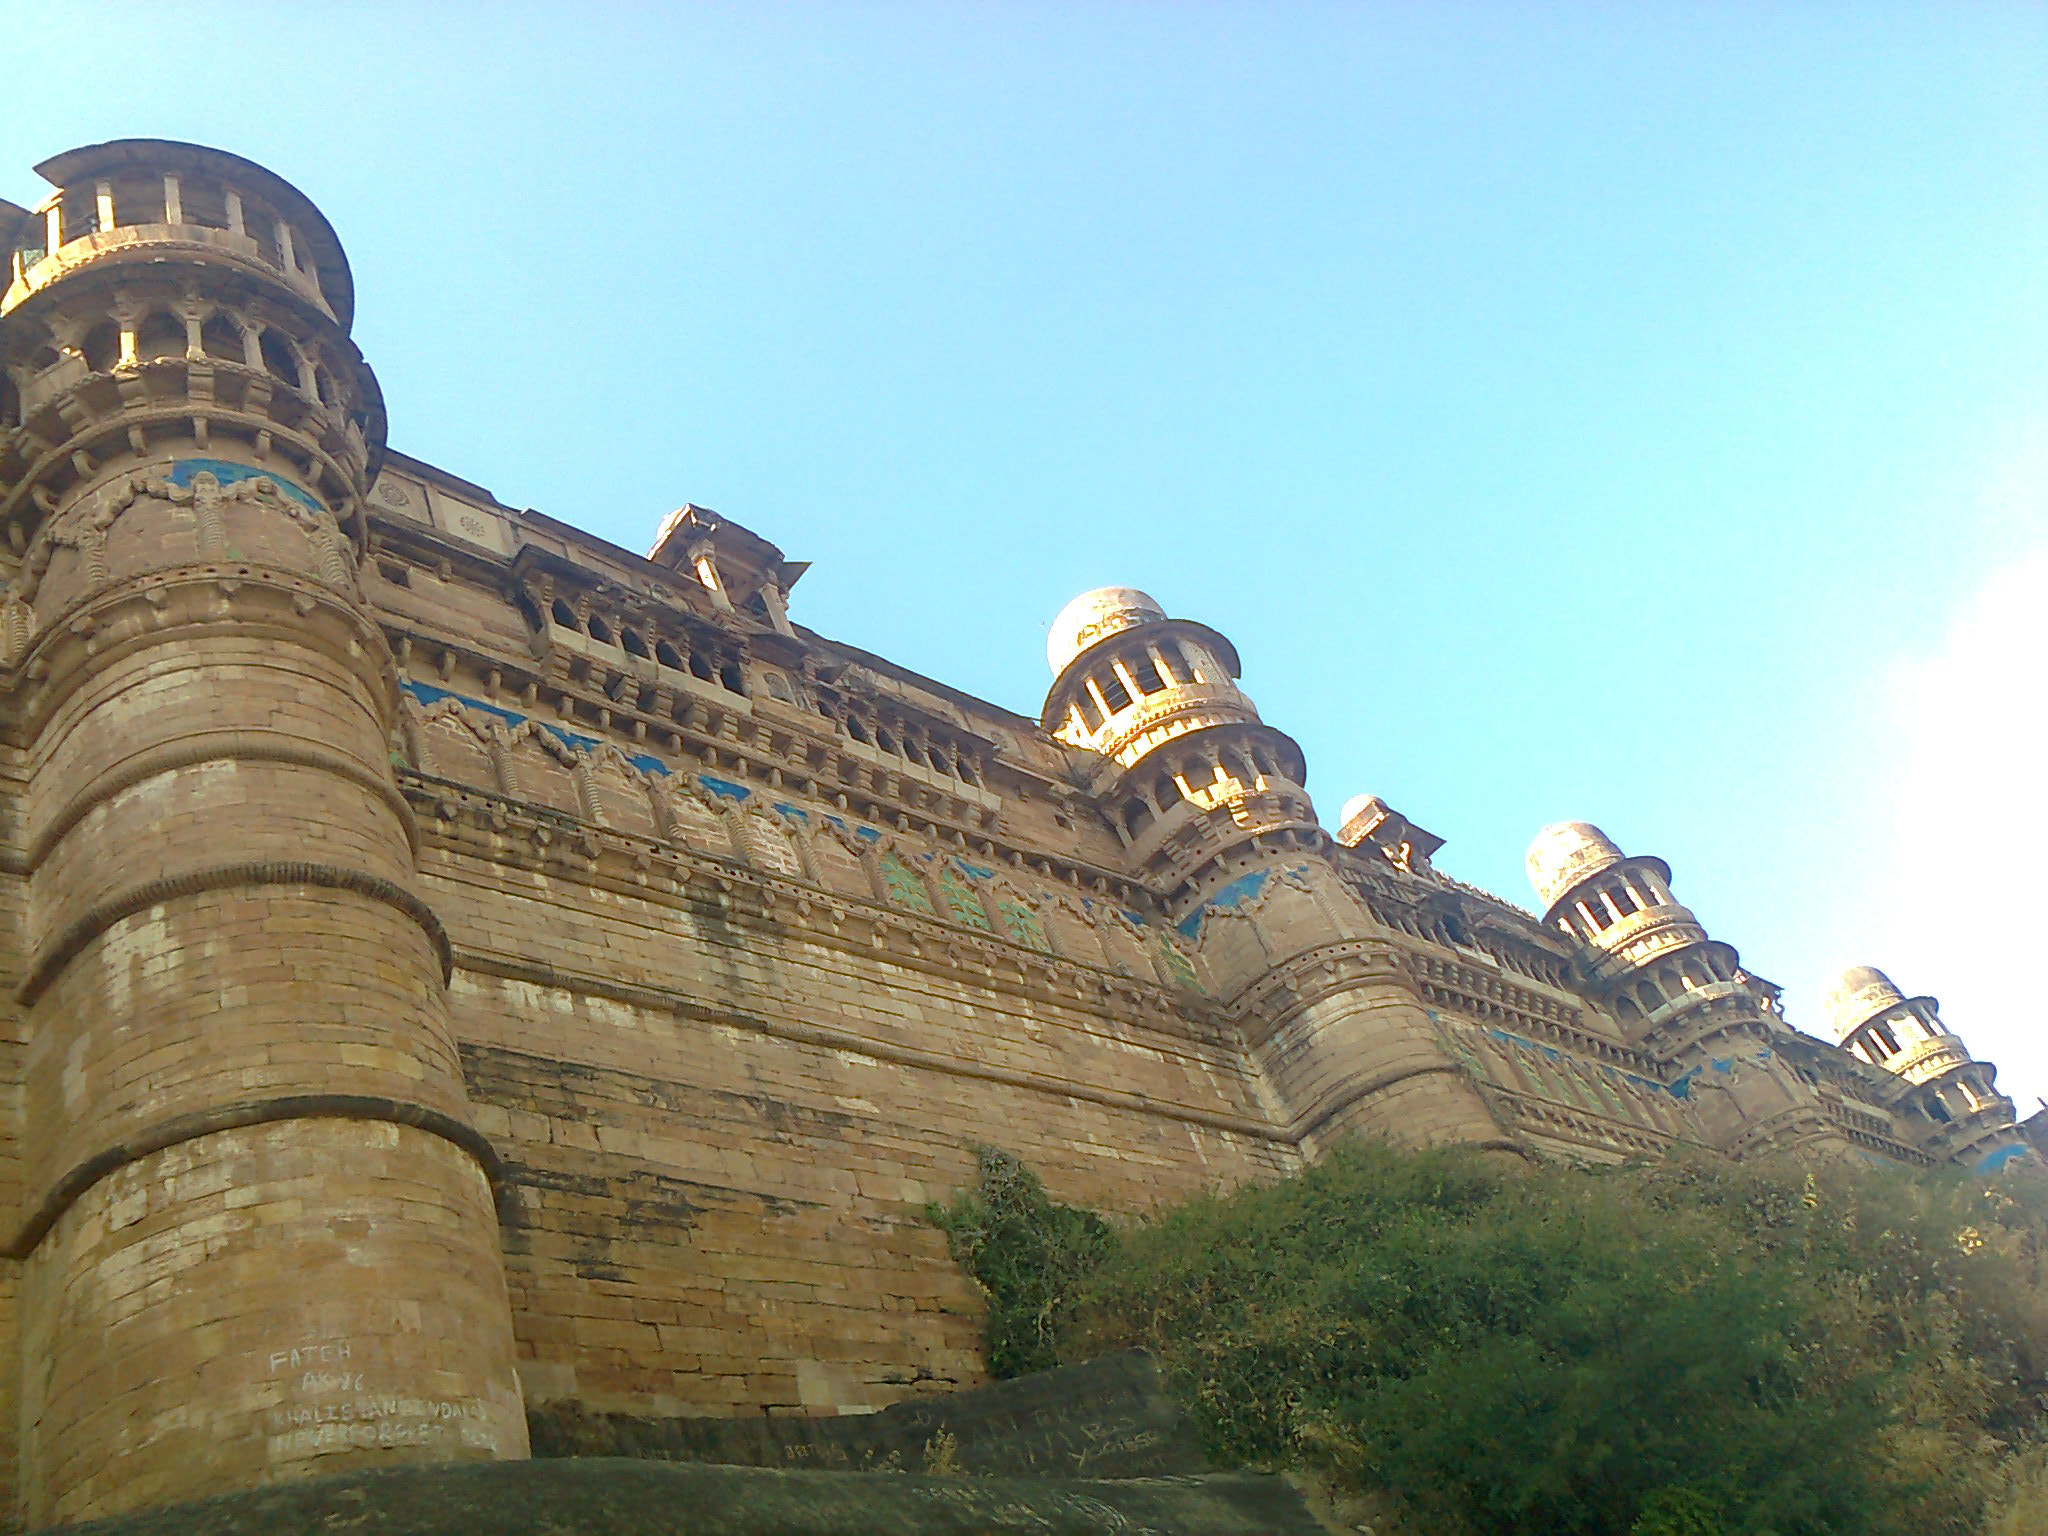 Photograph Gwalior Fort by Sanjeev Verma on 500px